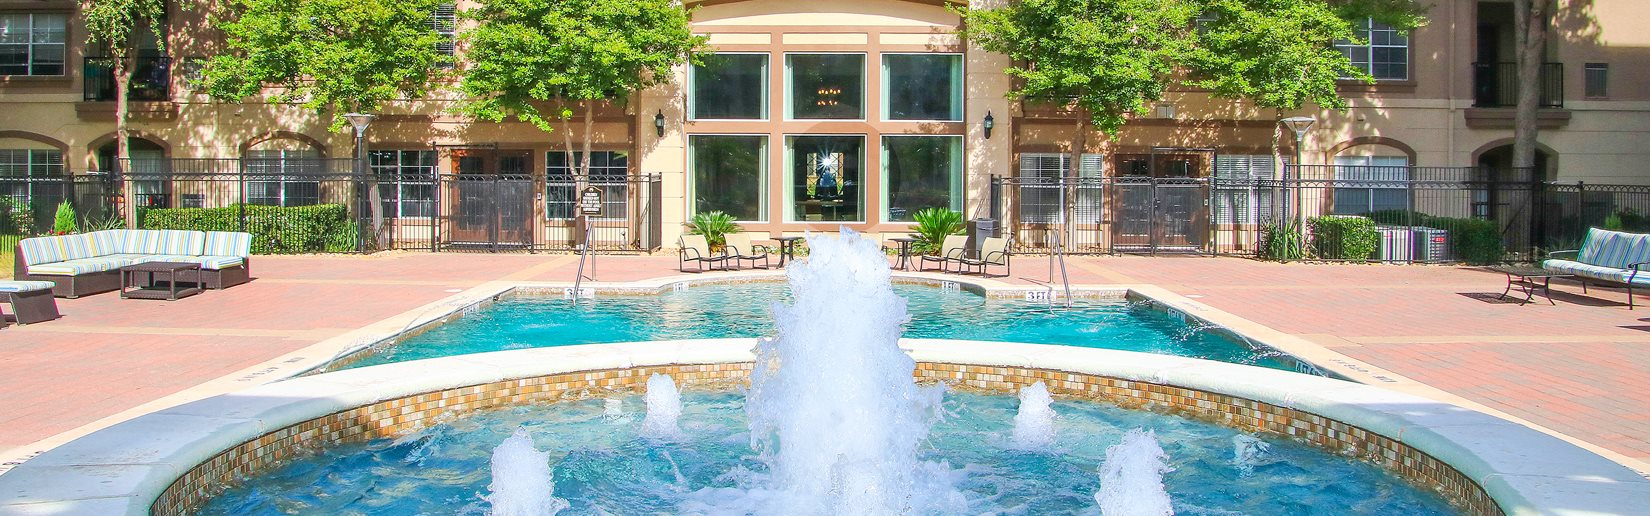 Fountain and pool at 7900 at Park Central